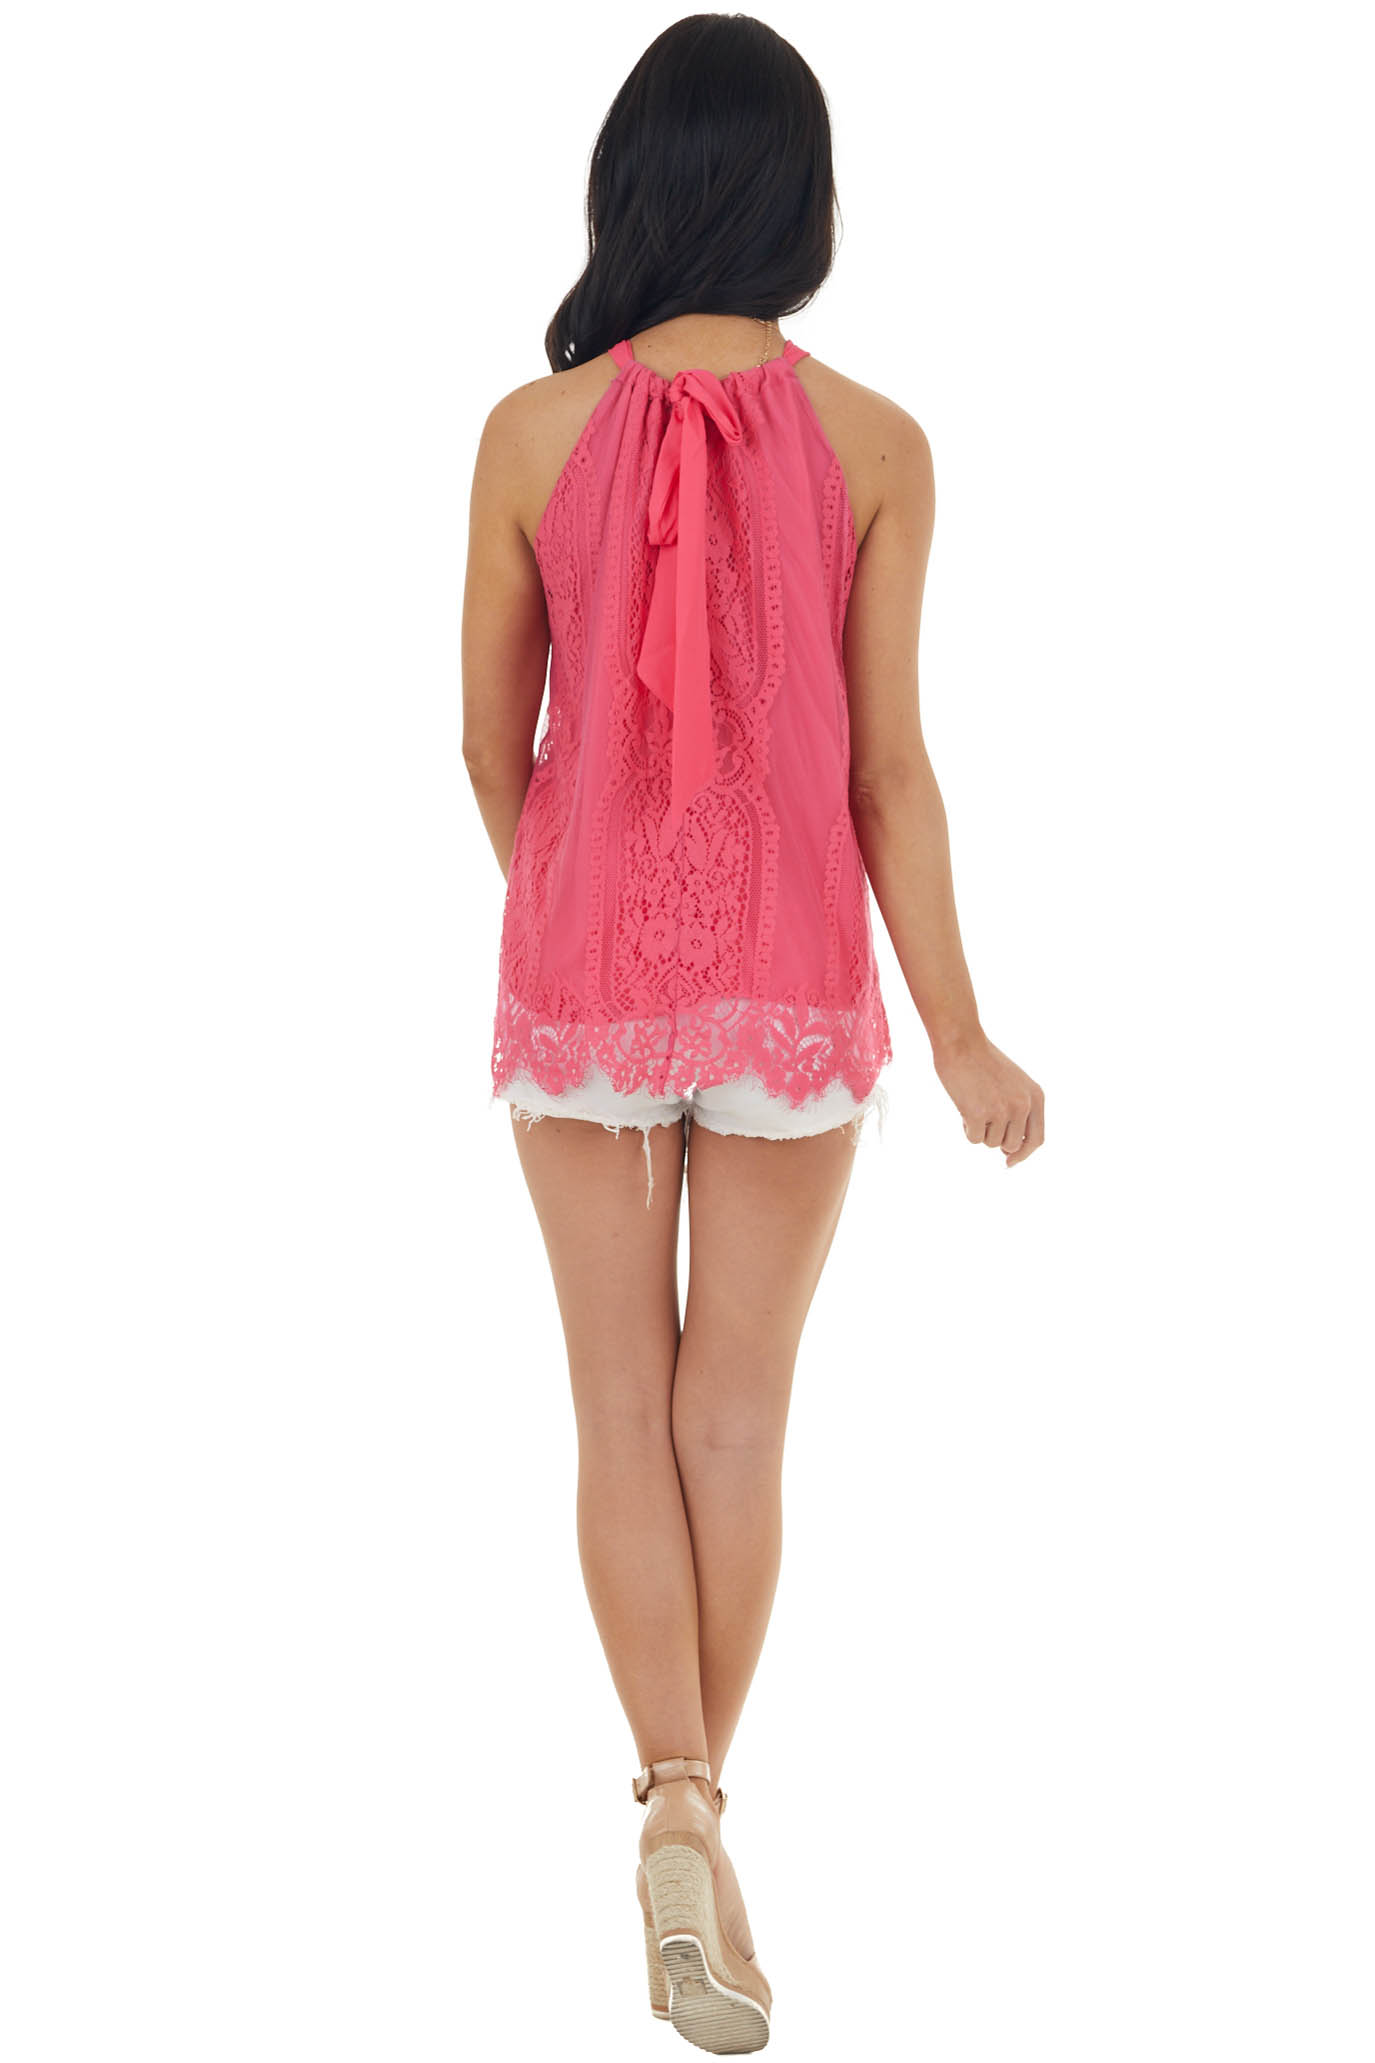 Hot Pink Lace Tied Halter Neckline Sleeveless Woven Top